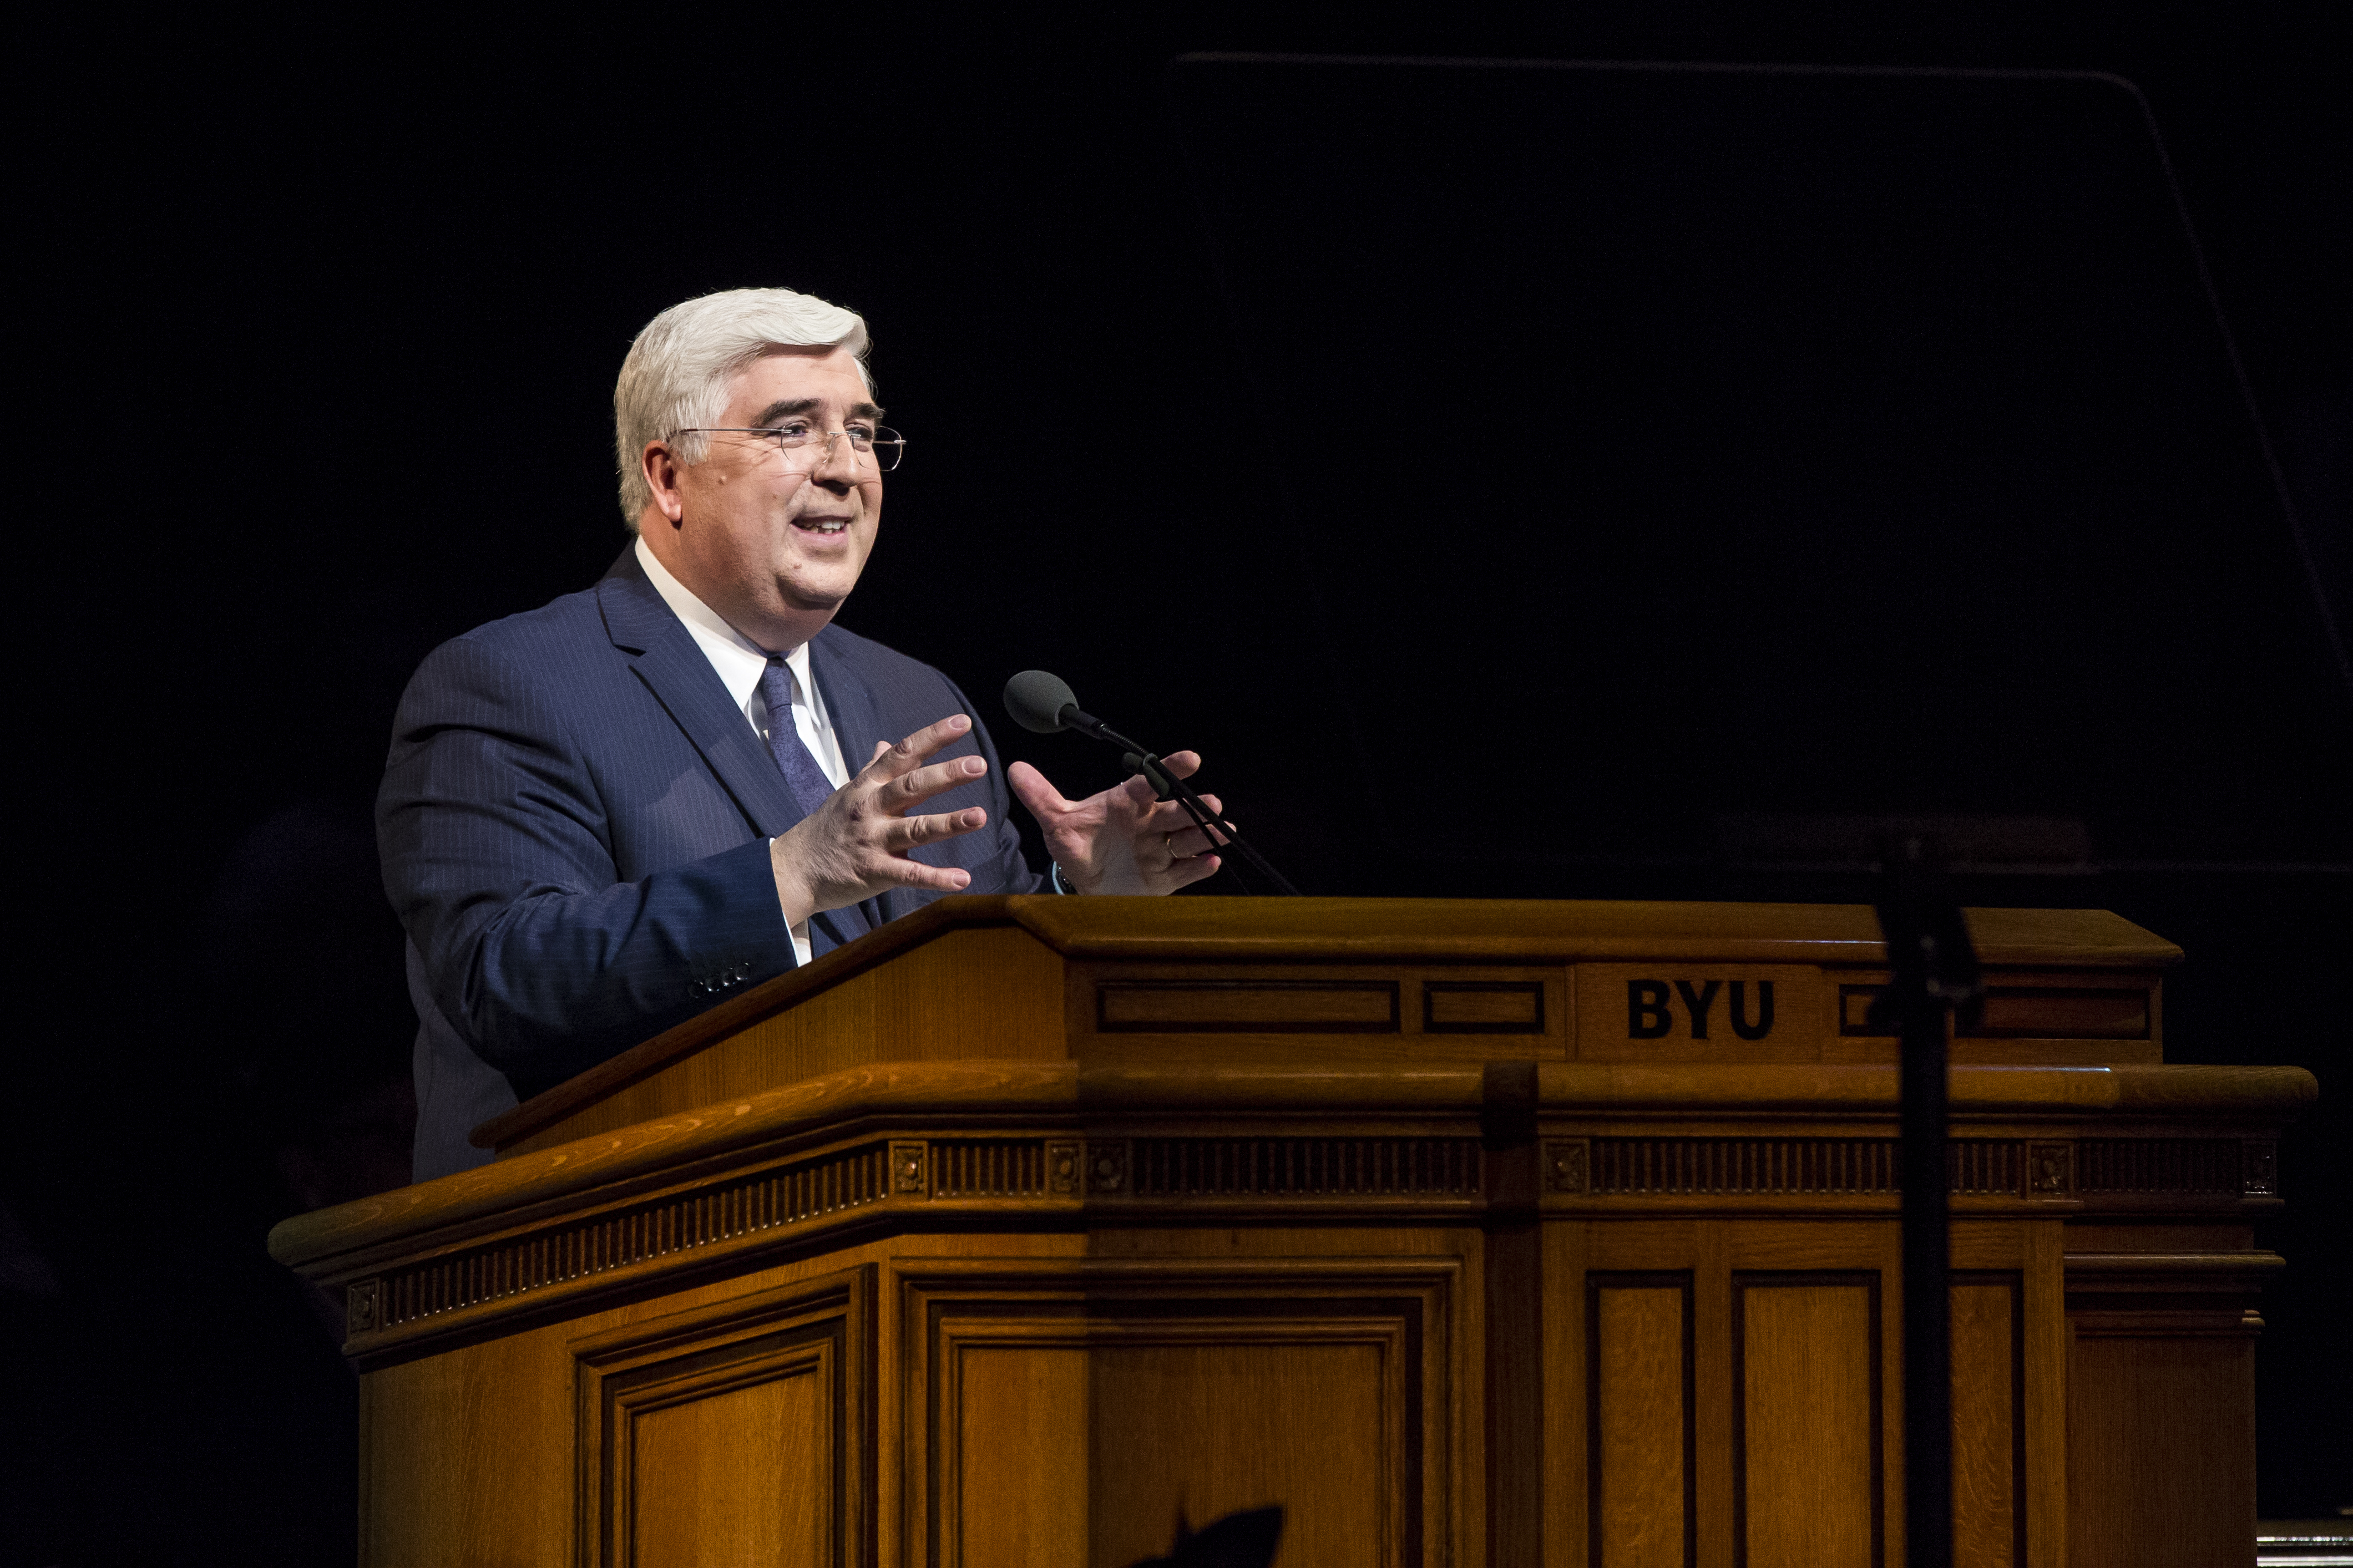 Elder José A. Teixeira, a member of the Presidency of the Seventy, delivers the devotional address in the Marriott Center at Brigham Young University on Tuesday, Nov. 6, 2018.